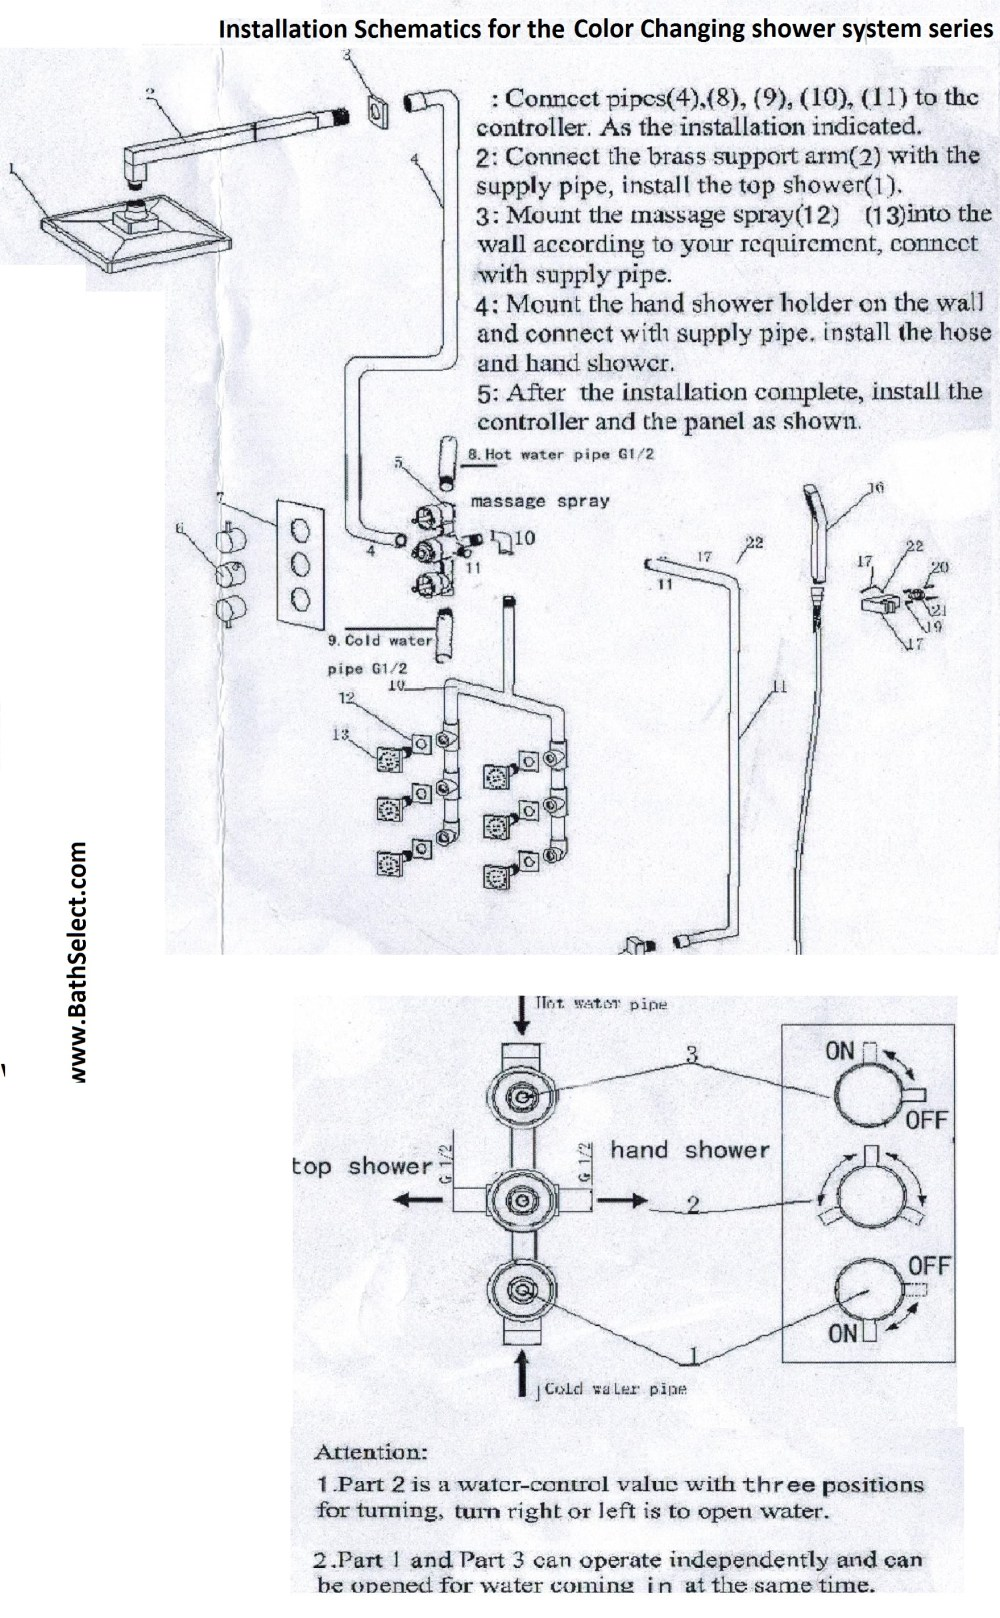 medium resolution of the shower system installation schematics diagram color changing temperature sensing led shower head